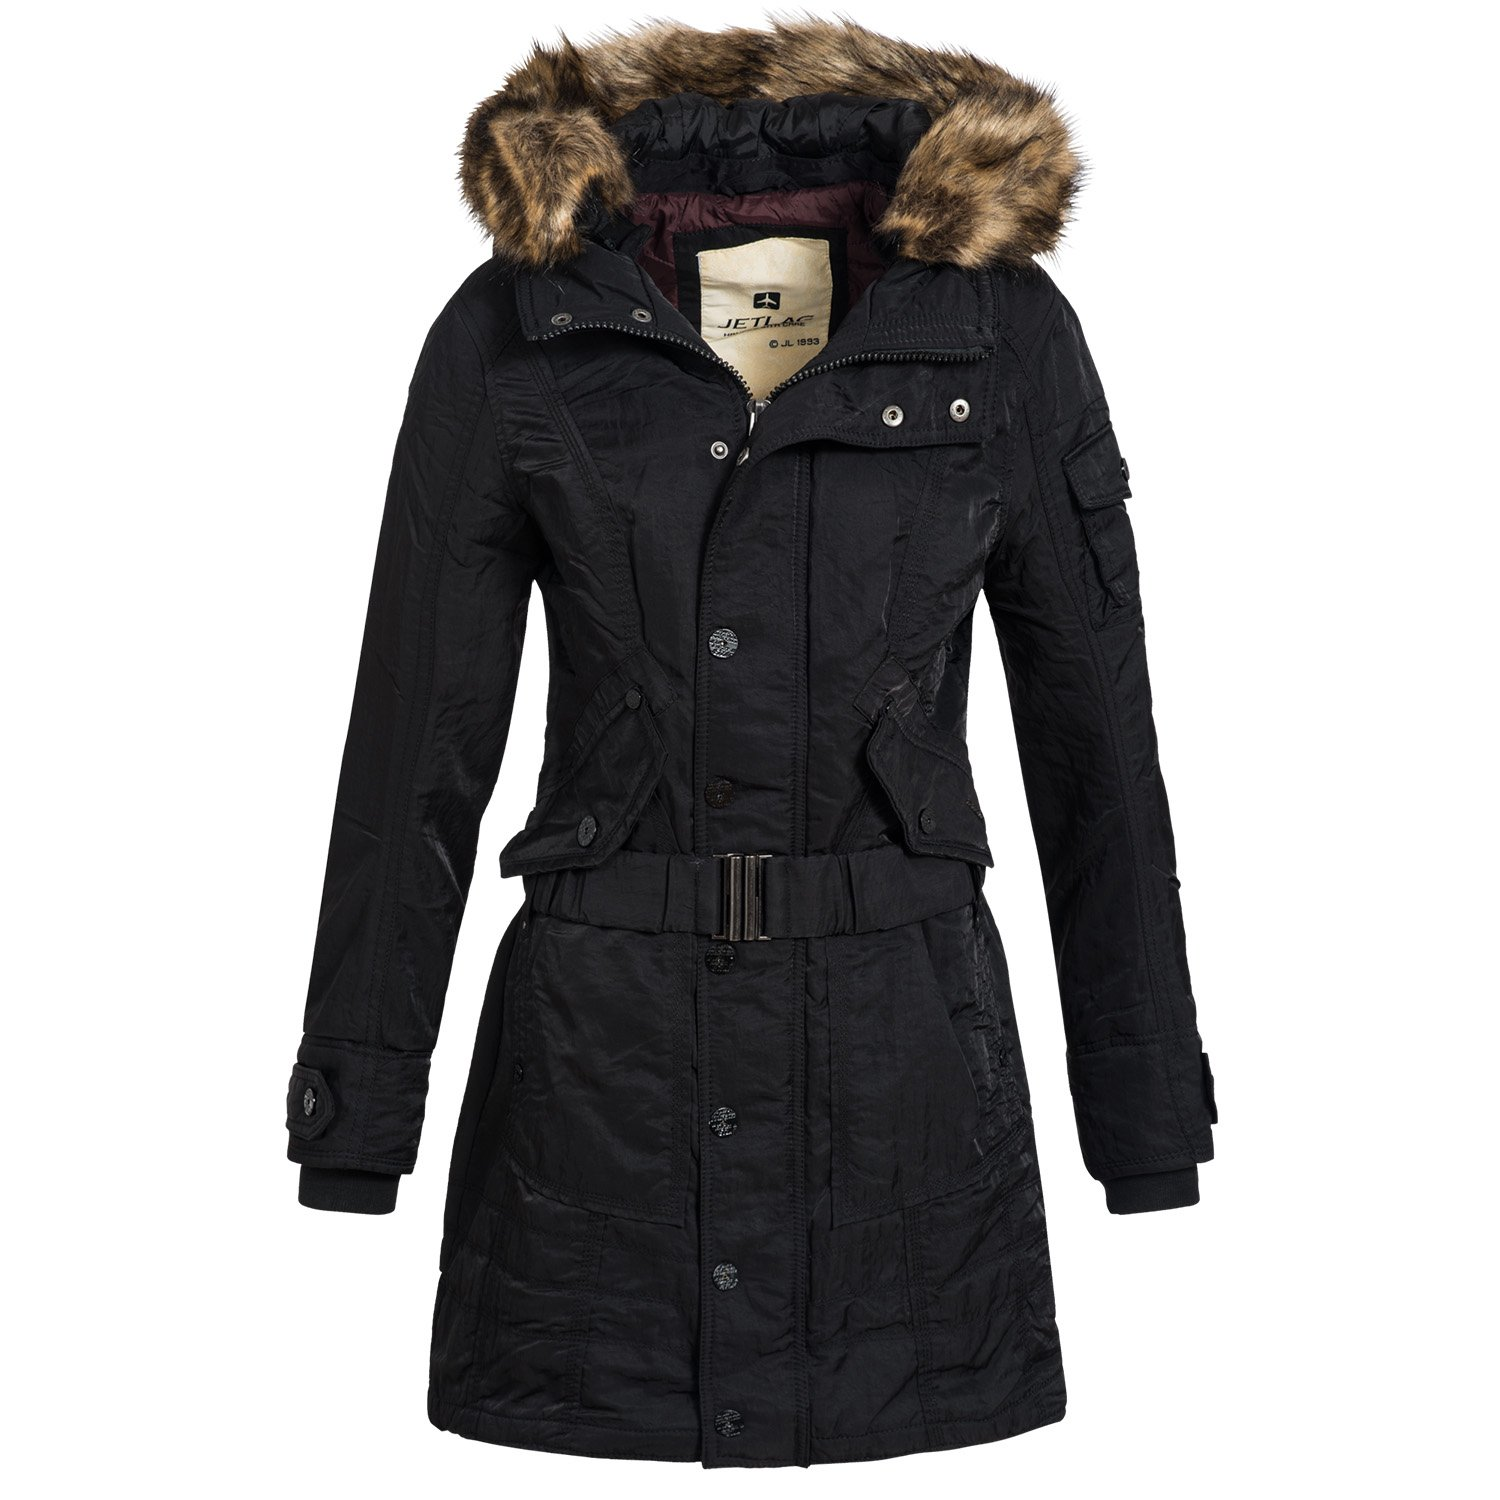 Jetlag Damen Winter Mantel Wintermantel Winterjacke Parka Jacke Mantel YM90